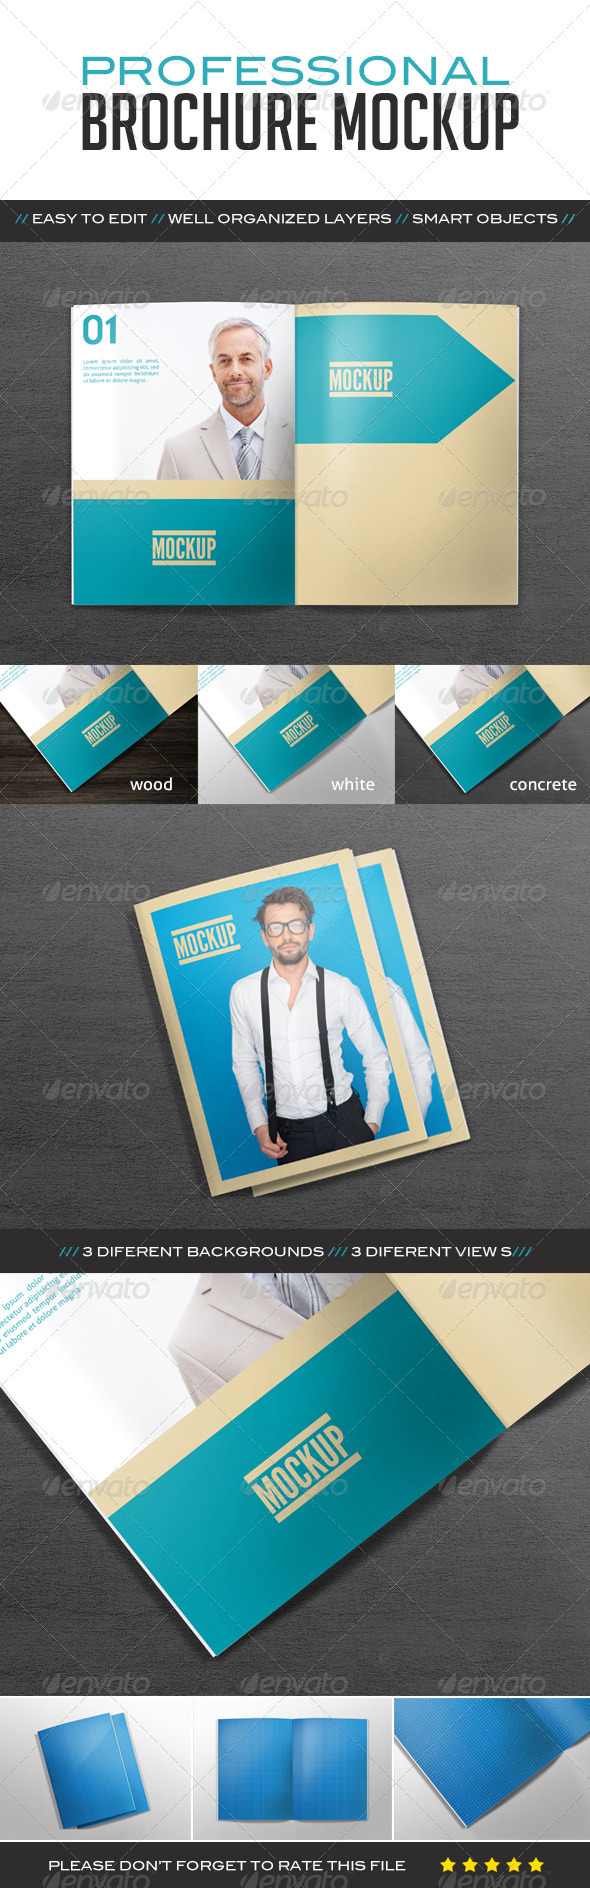 GraphicRiver Professional Brochure Mockup 8352111